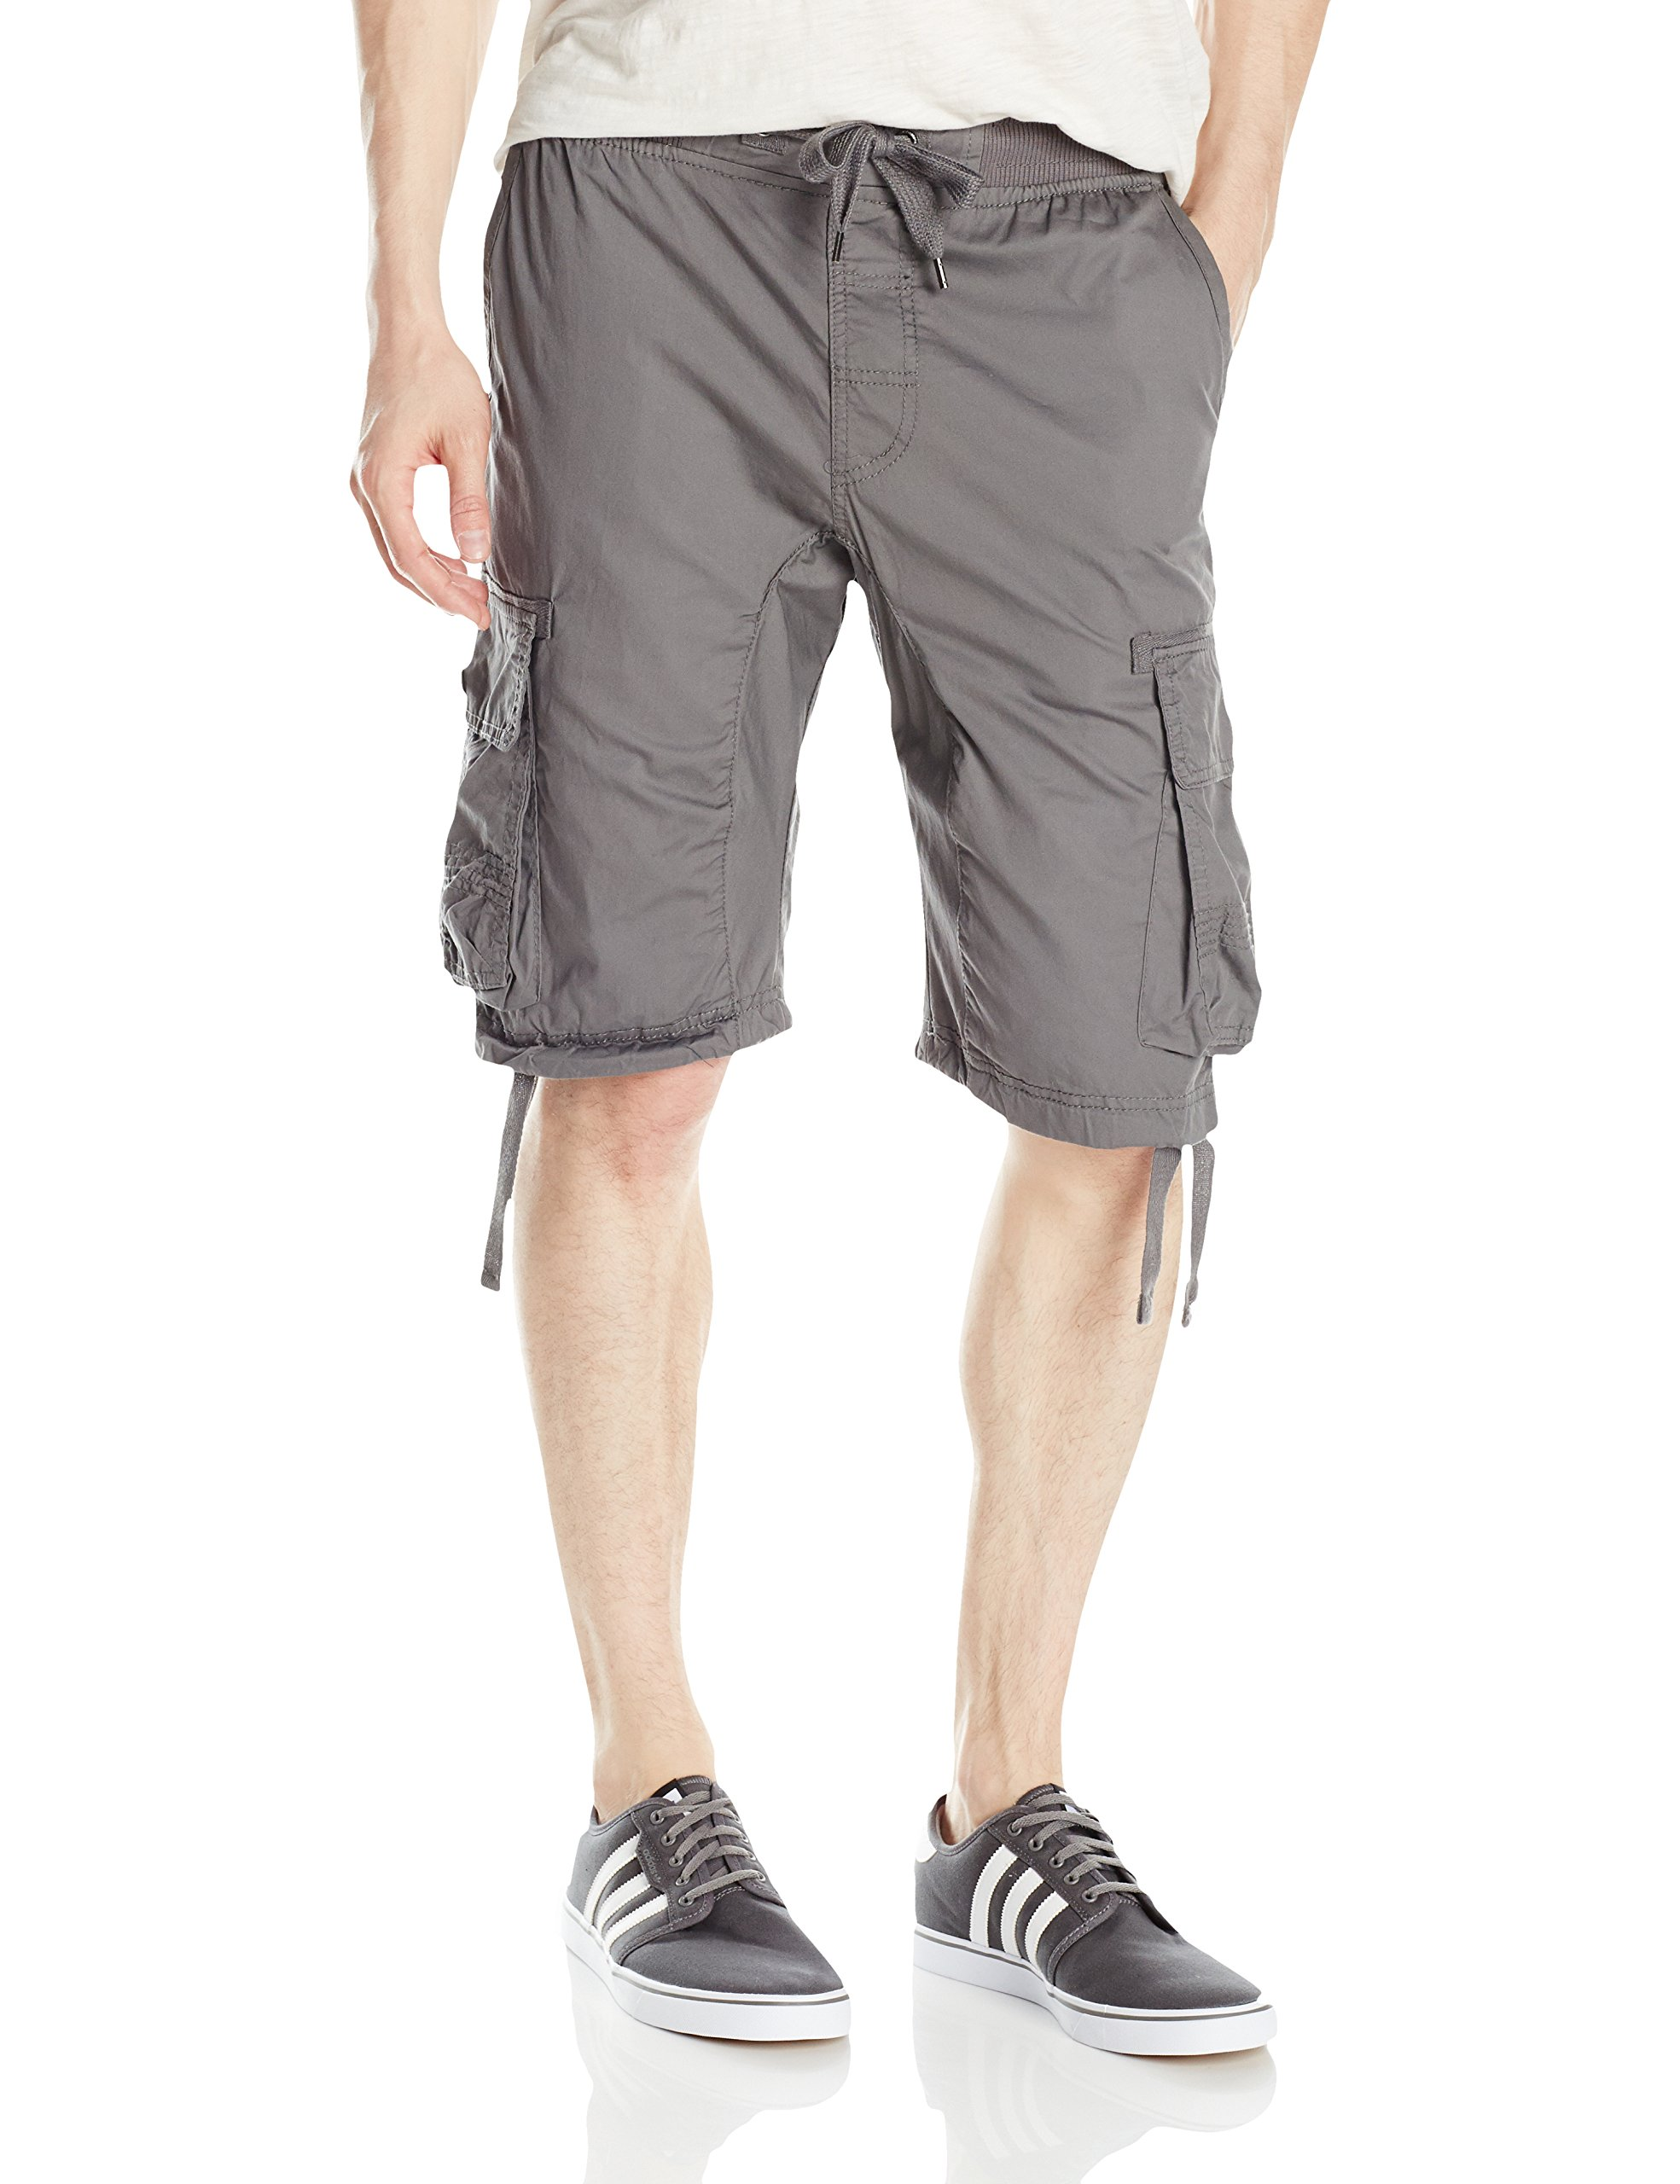 Southpole Men's Jogger Shorts with Cargo Pockets in Solid and Camo Colors, Dark Grey(New), X-Large